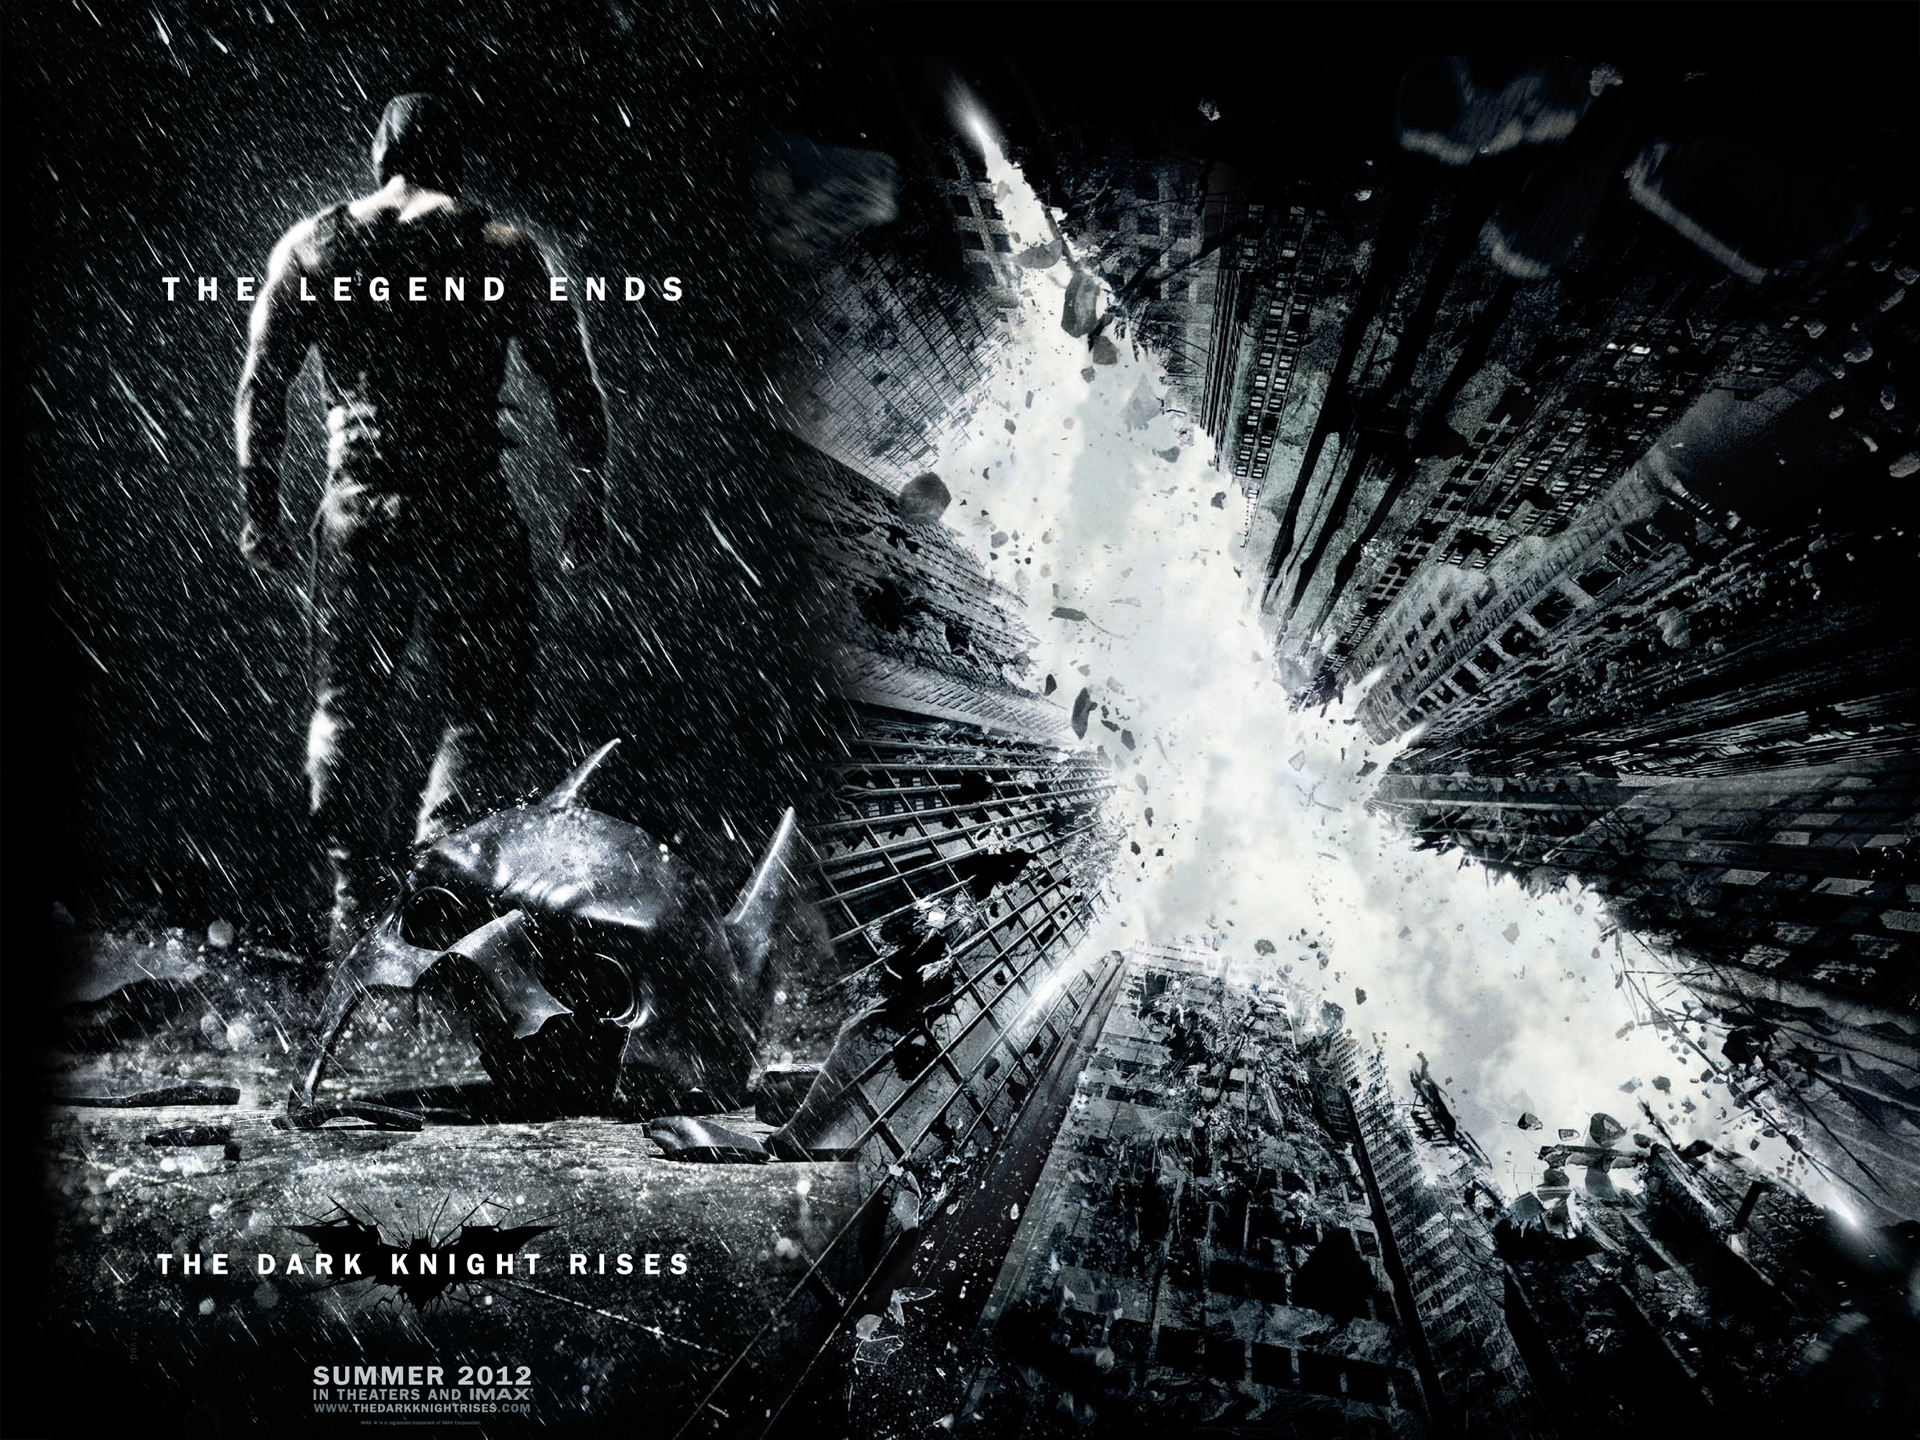 The Dark Knight Rises HD Wallpapers and Desktop Backgrounds 1920x1440